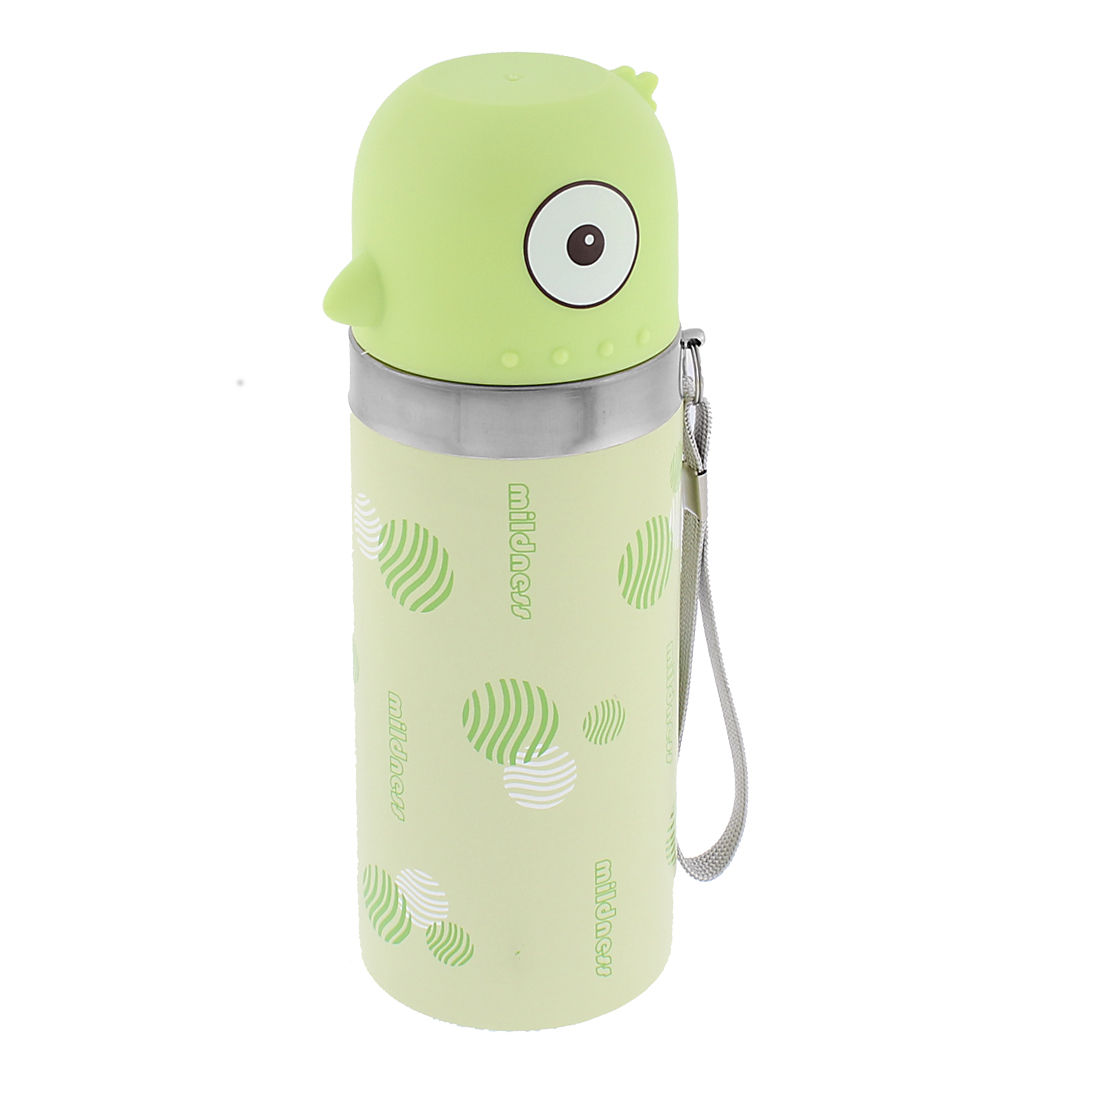 Student Stainless Steel Vacuum Insulated Warm Water Bottle Mug Green 350ml